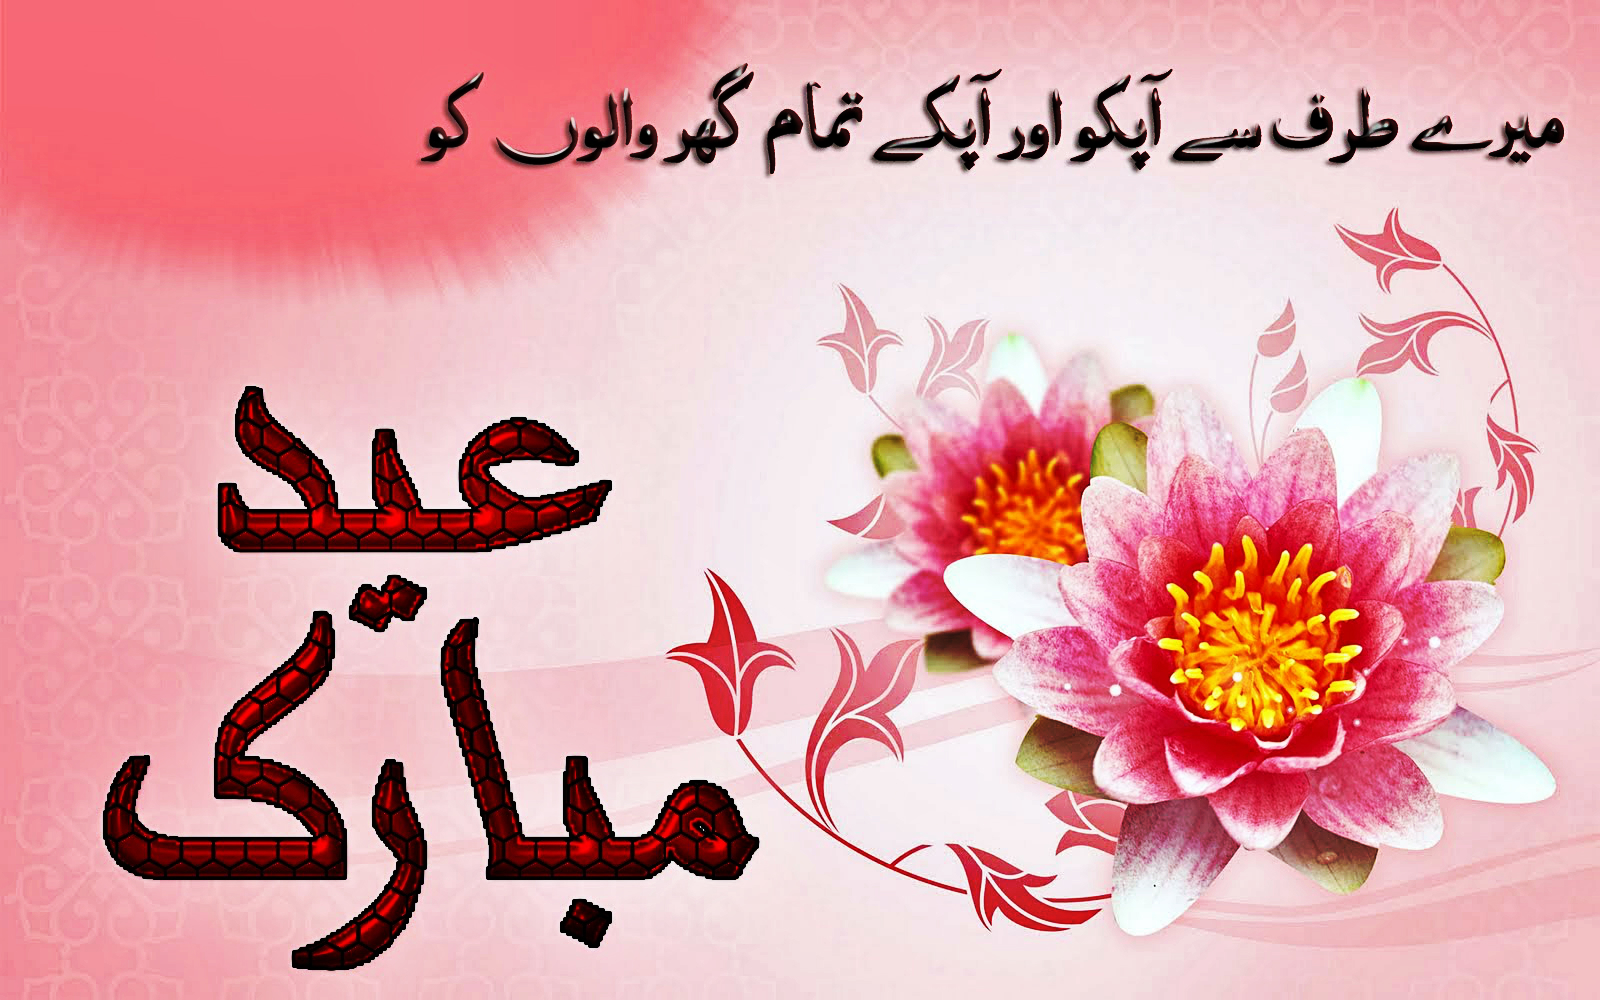 Eid ul adha zuha mubarak greetings cards wallpapers in urdu text eid ul adha zuha mubarak greetings cards wallpapers in urdu text latest m4hsunfo